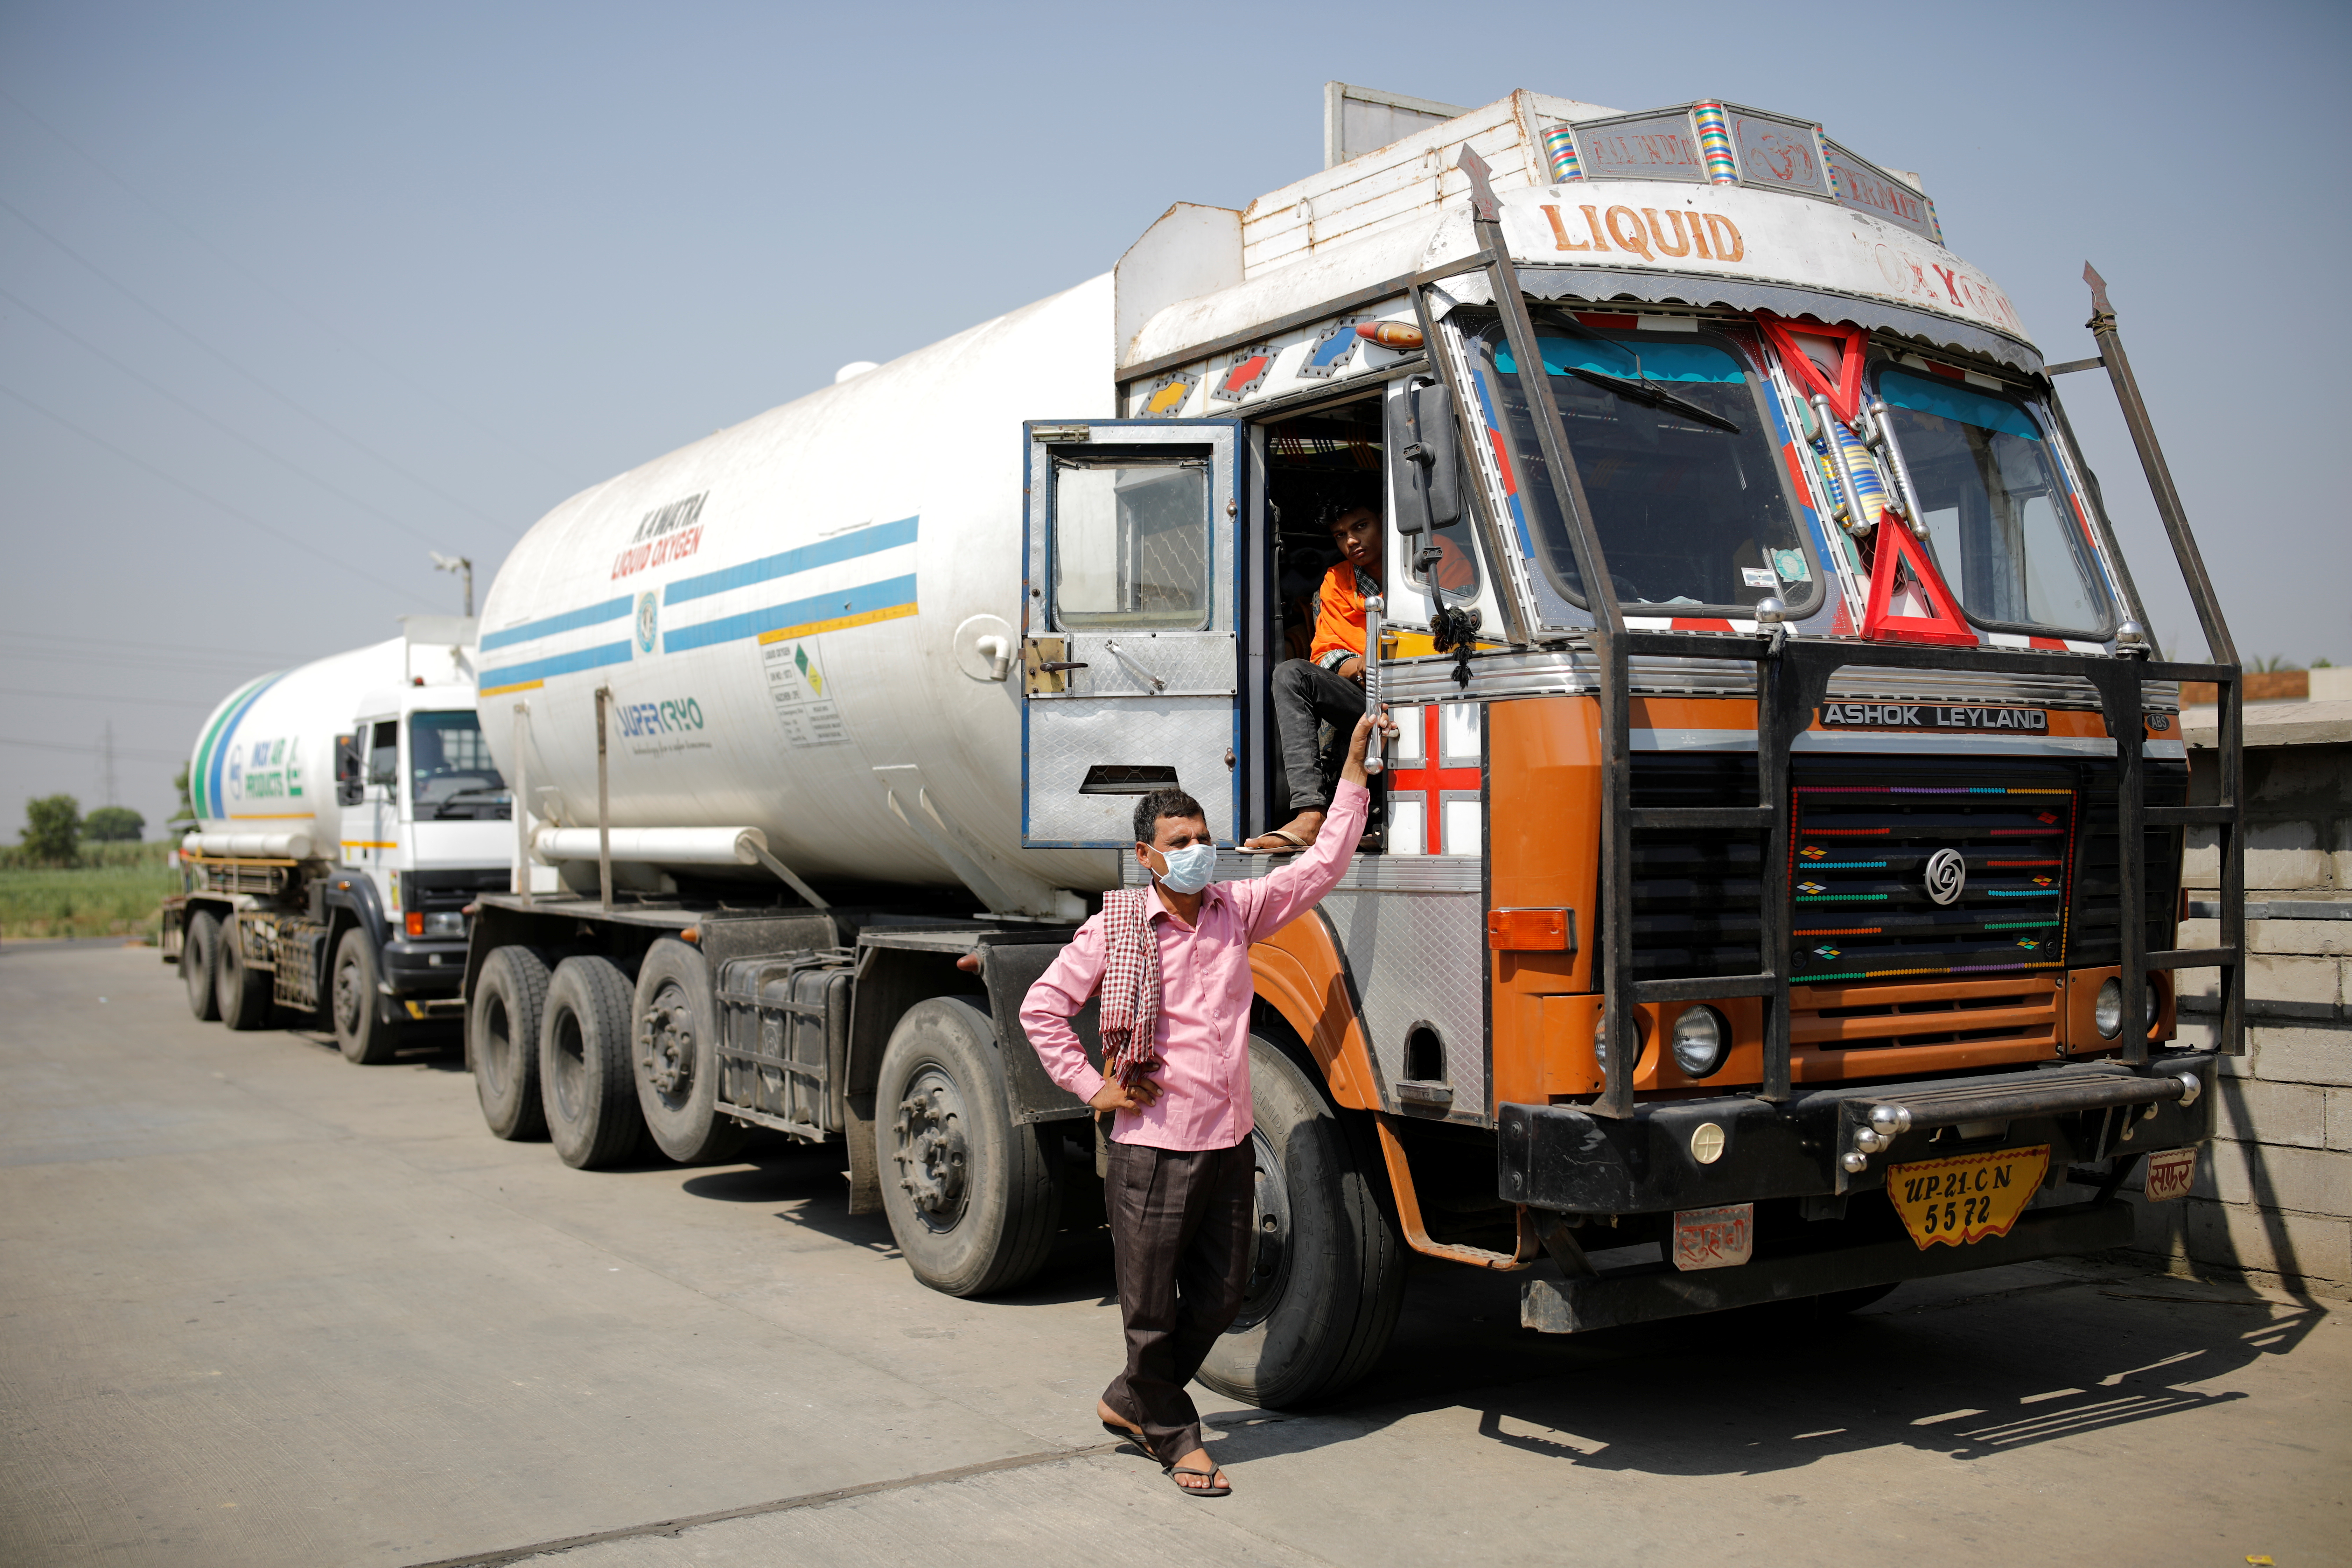 A driver stands next to an empty tanker as he waits for his turn to fill liquid oxygen, to be transported to a COVID-19 hospital, amidst the spread of the coronavirus disease, in Ghaziabad, on the outskirts of New Delhi, India, April 22, 2021. REUTERS/Adnan Abidi